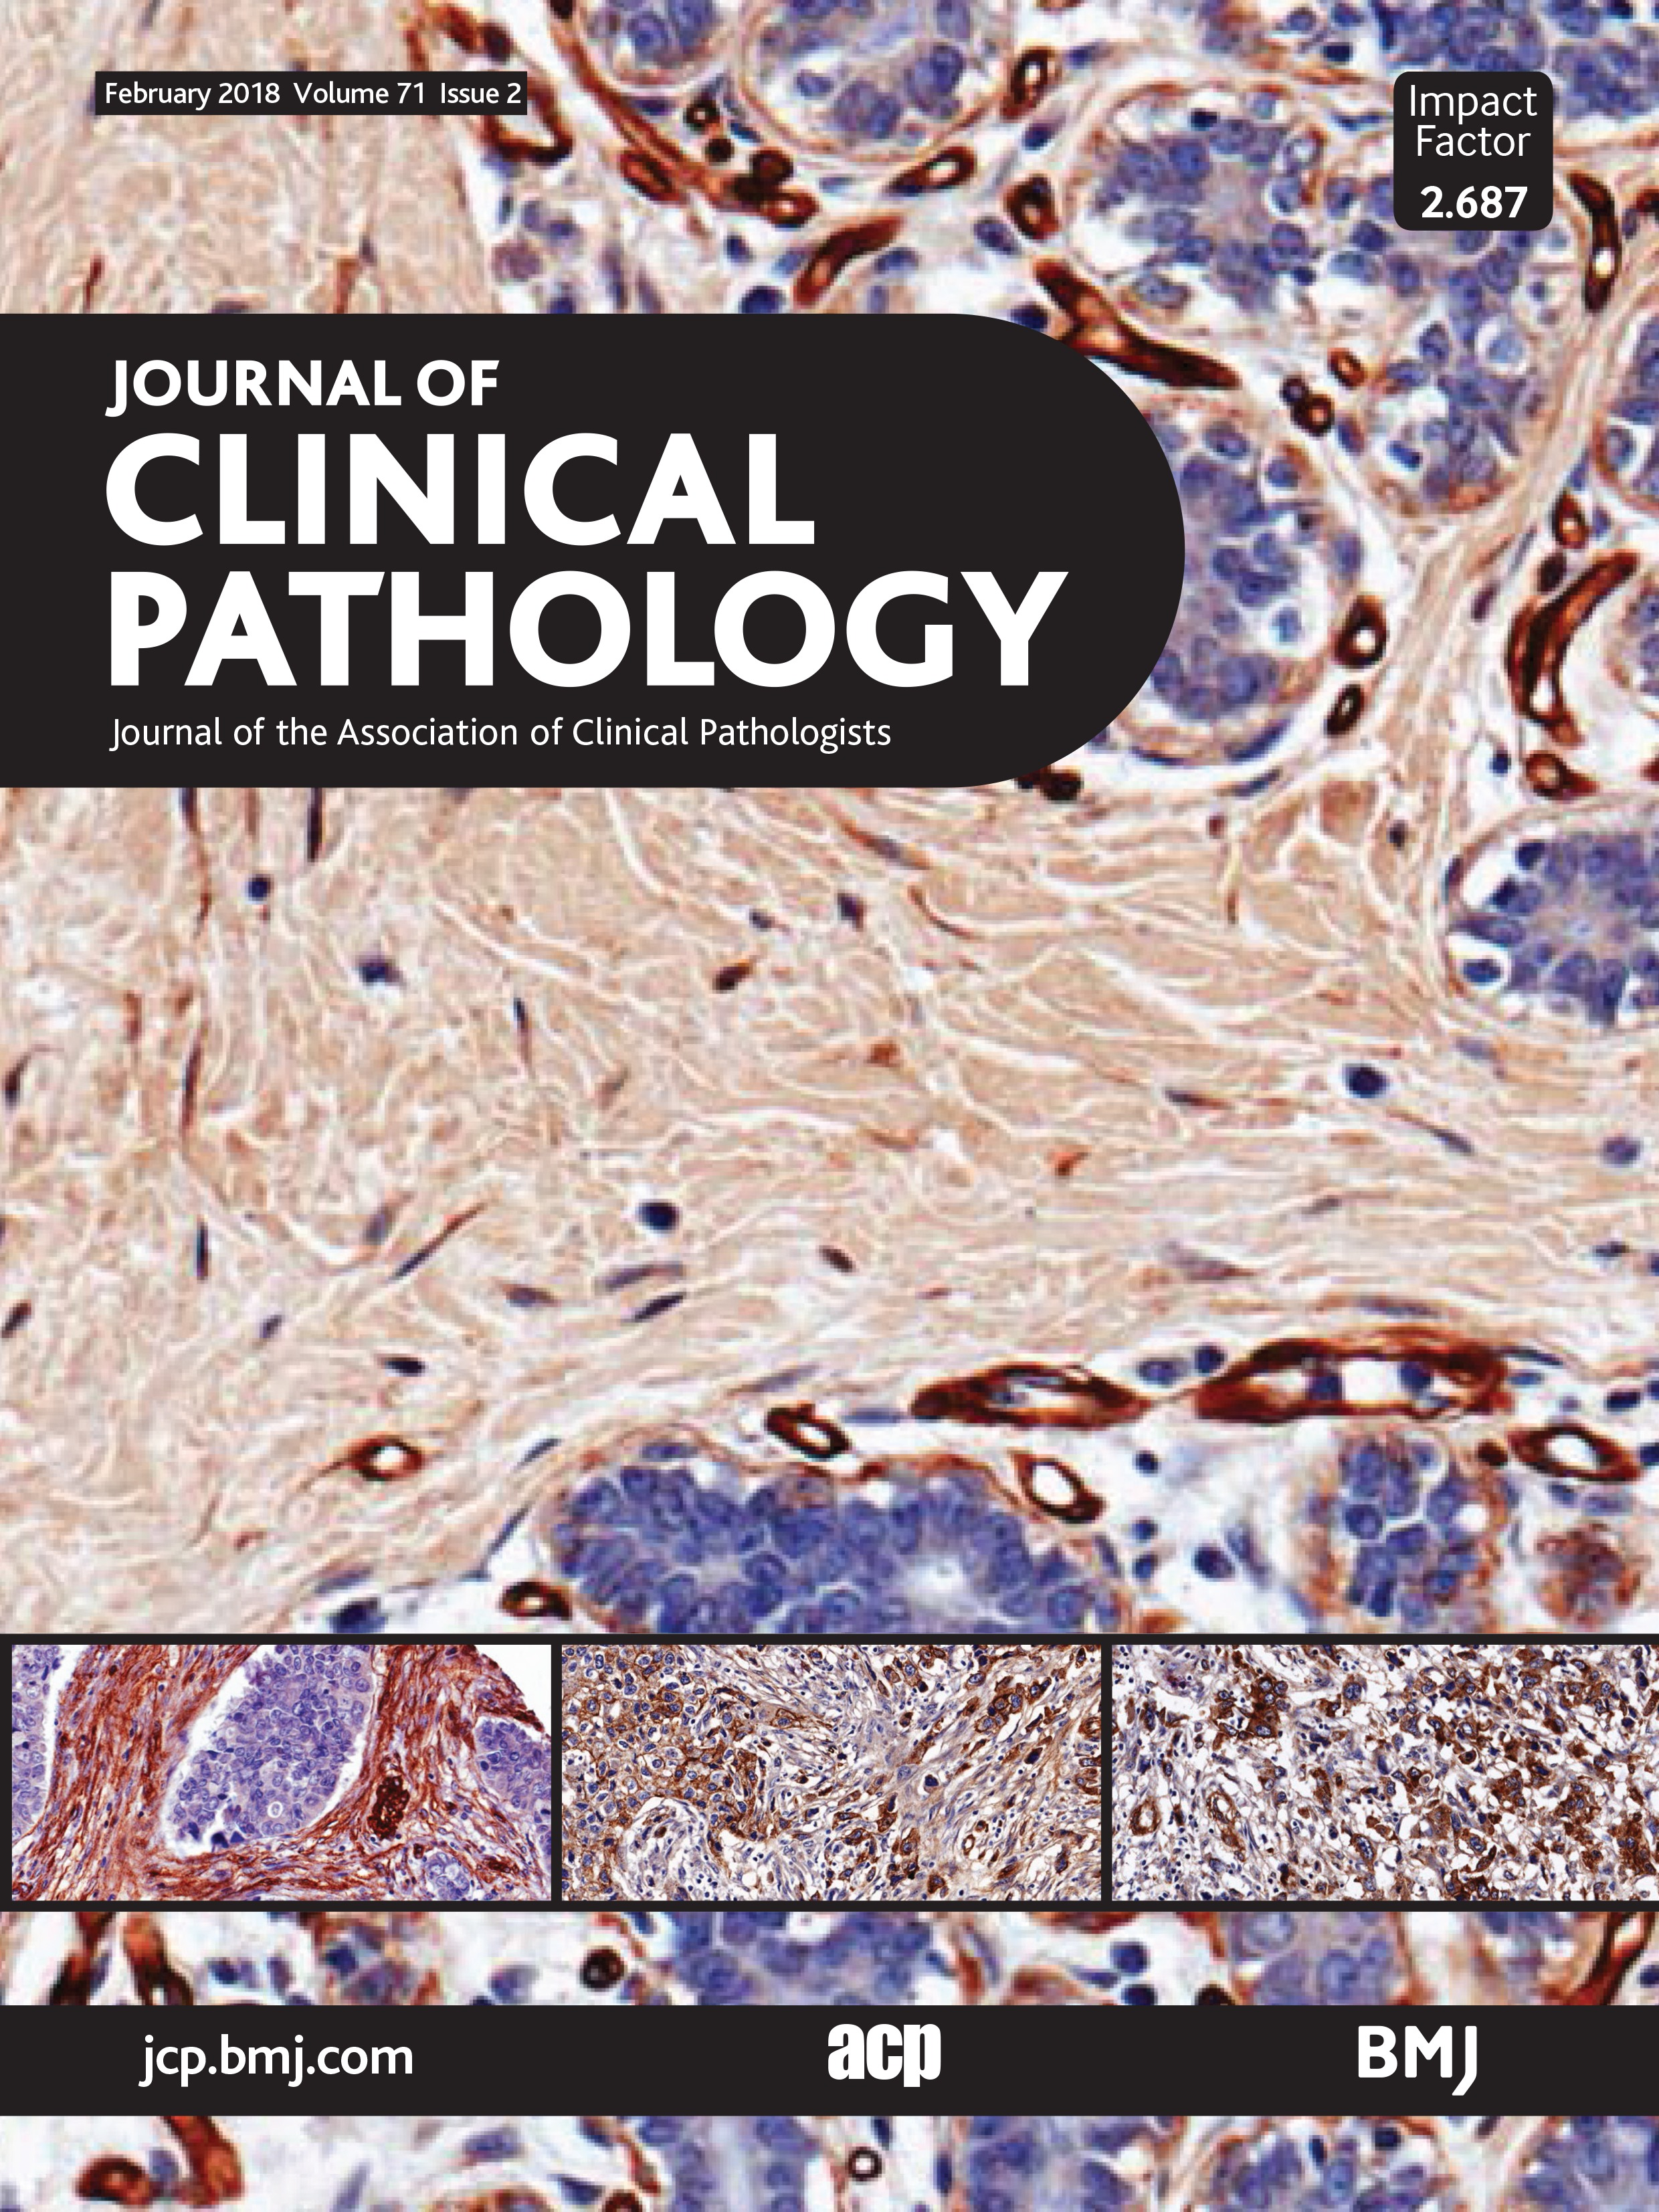 Cancer Stem Cells In Colorectal Cancer A Review Journal Of Clinical Pathology